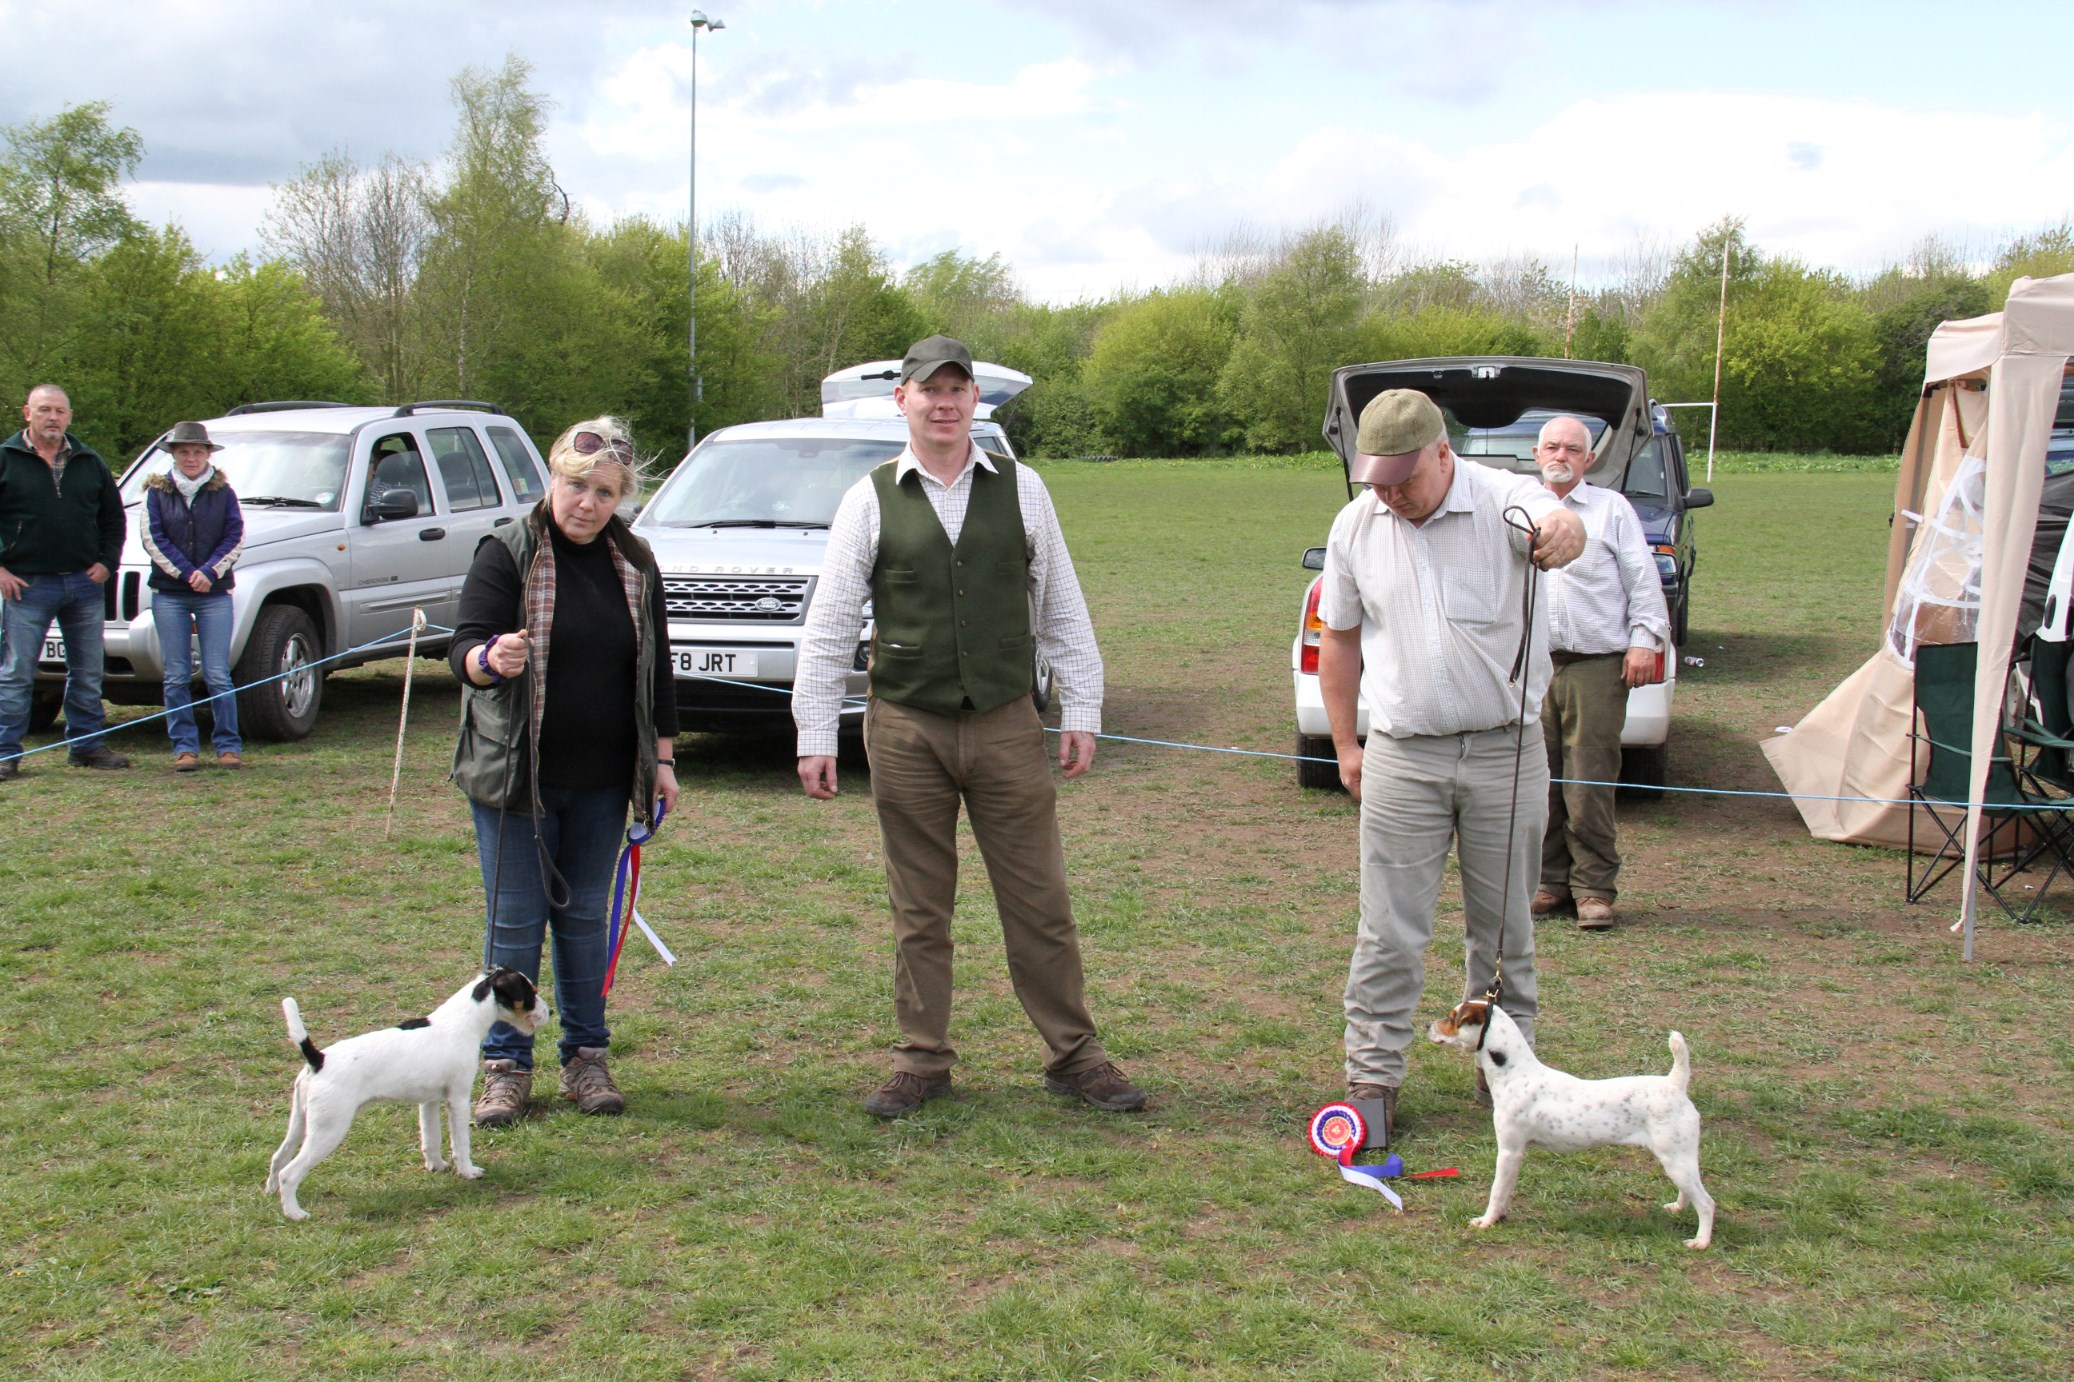 Best puppy Rushill Ellie - M & E Hulme (right) Reserve Brendan Poppy - Francesca Burrows